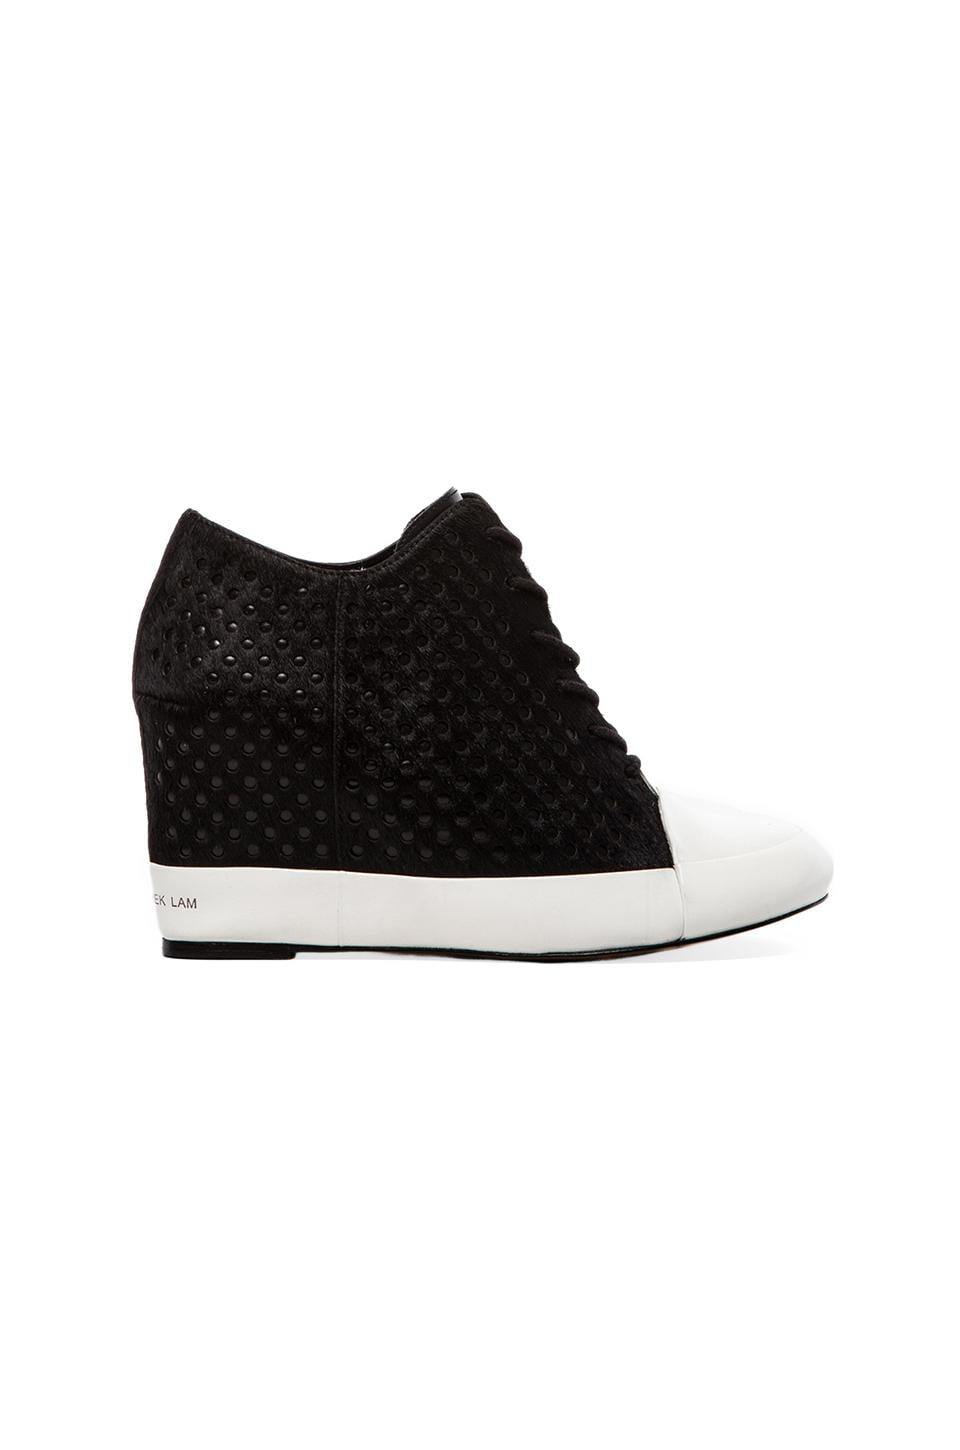 DEREK LAM 10 CROSBY Meryl Sneaker Wedge with Calf Fur in Black